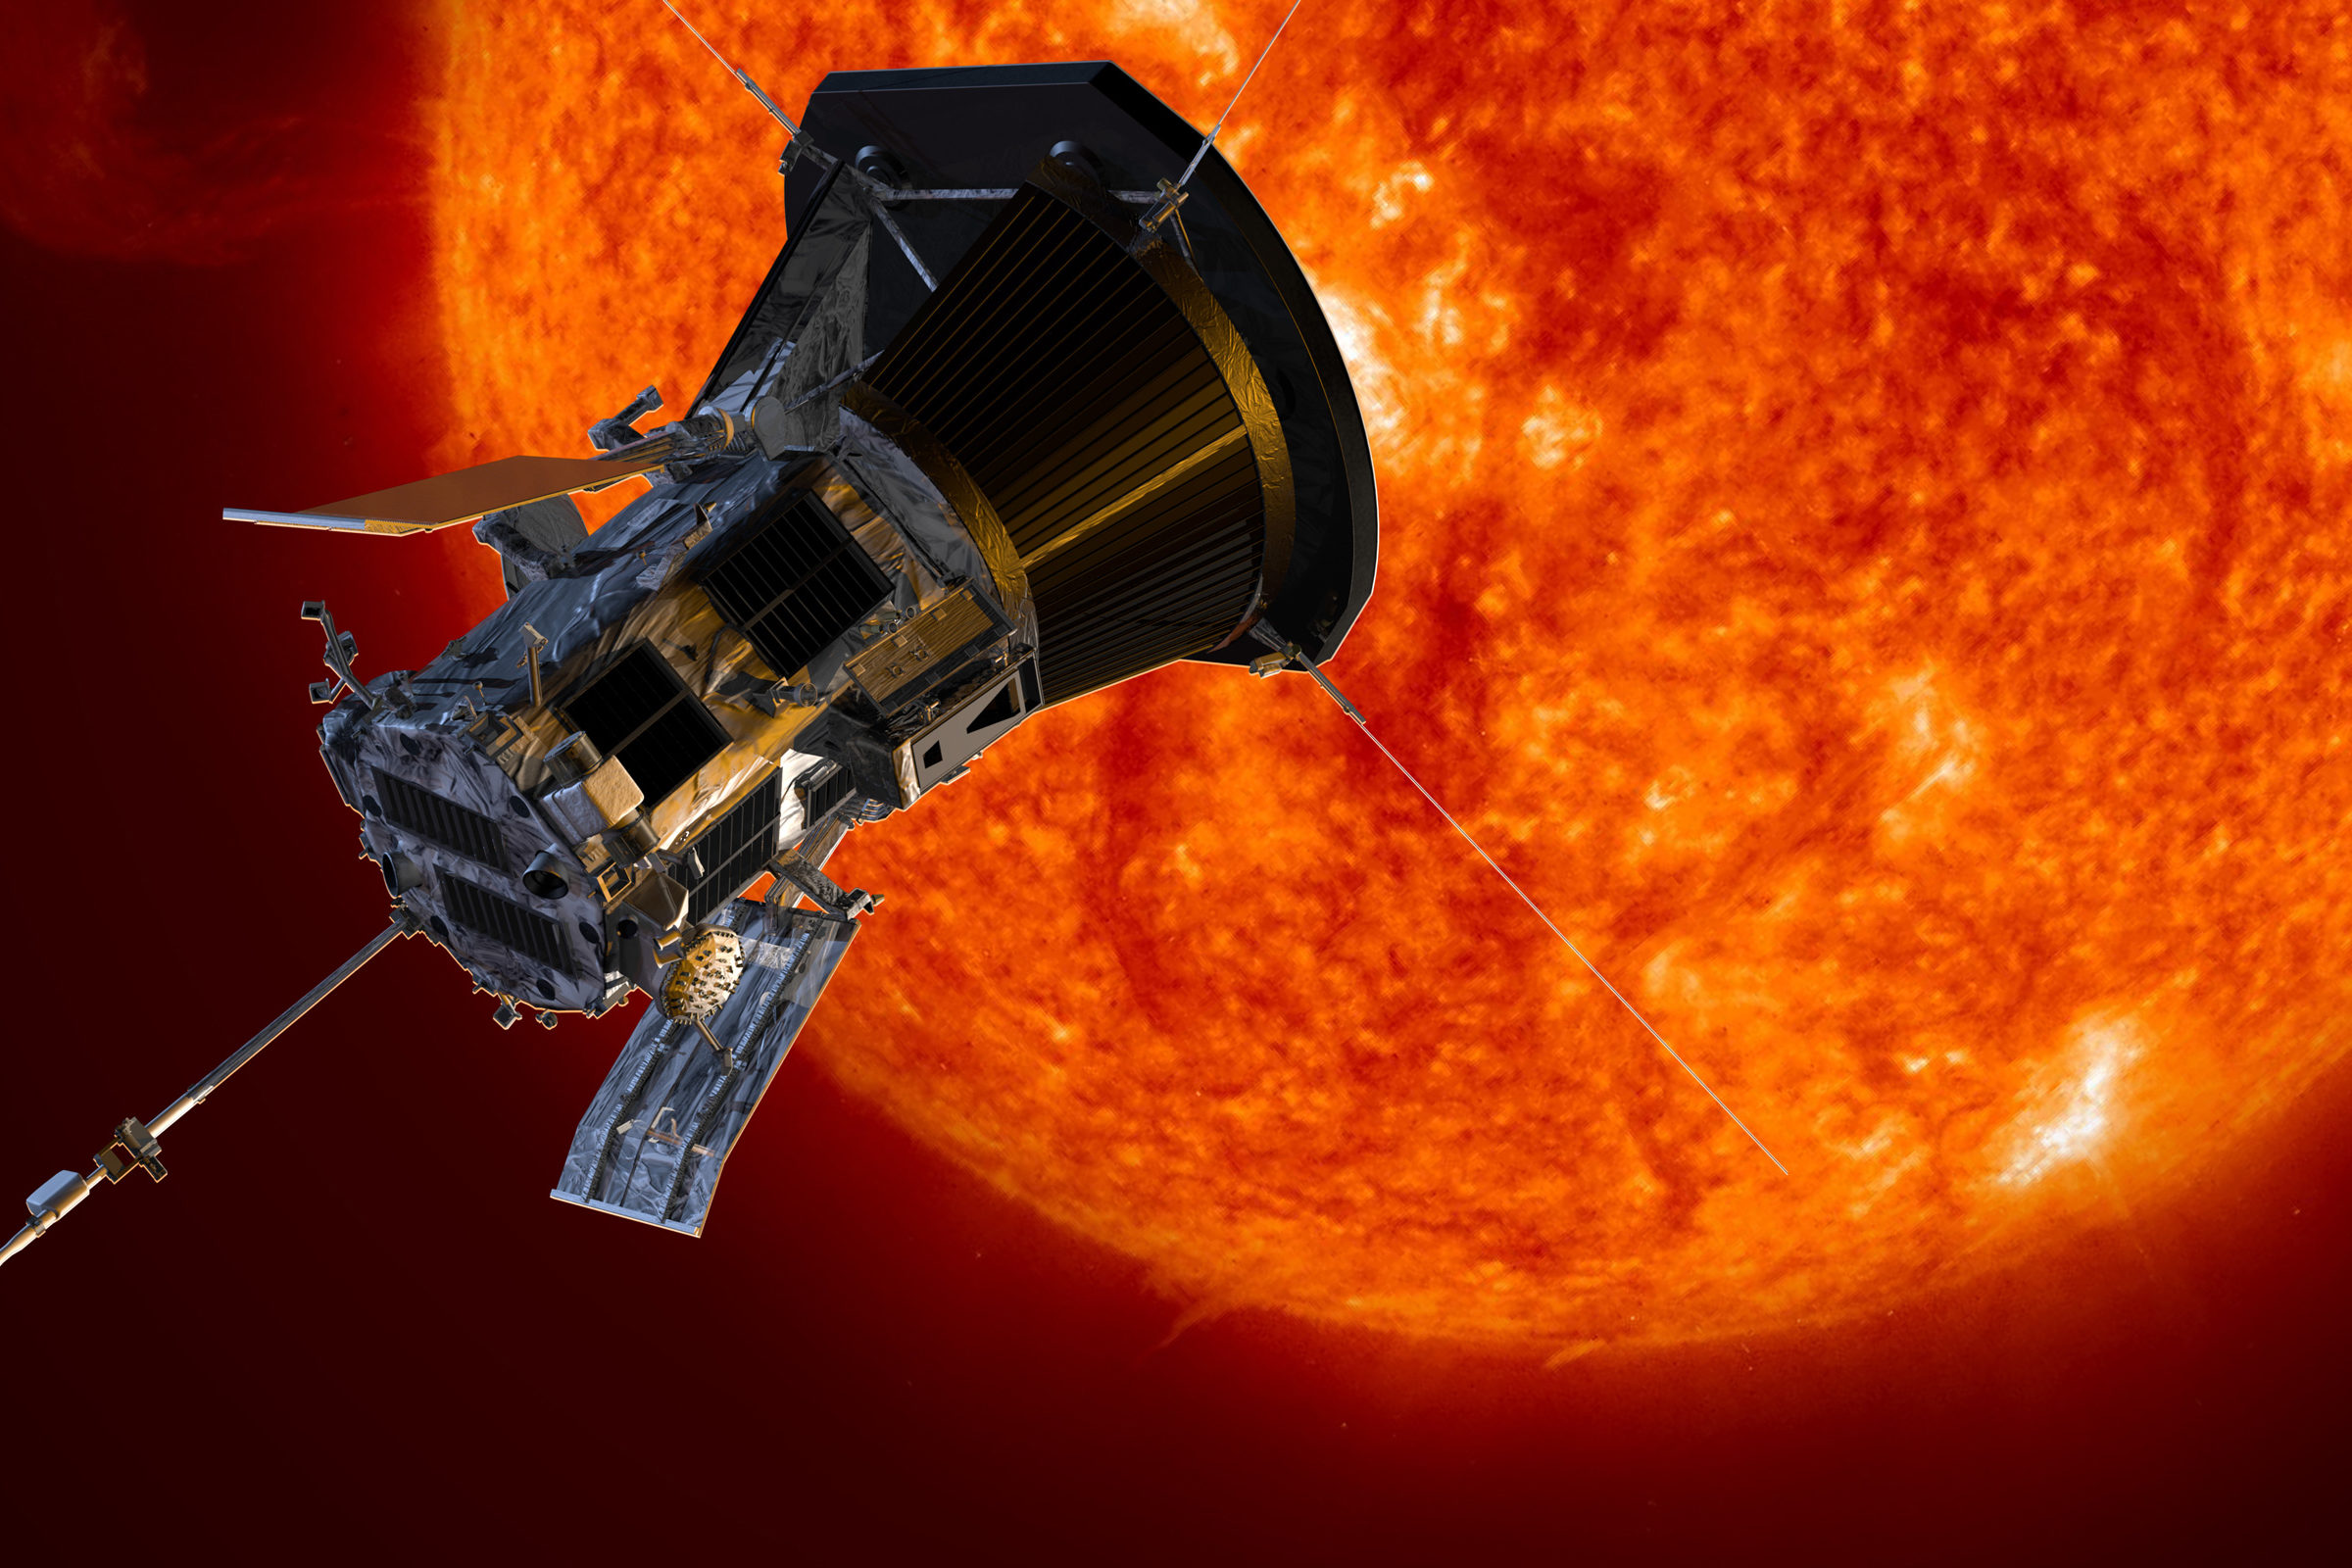 Artist's concept of the Parker Solar Probe spacecraft approaching the sun. Credit: NASA/Johns Hopkins APL/Steve Gribben